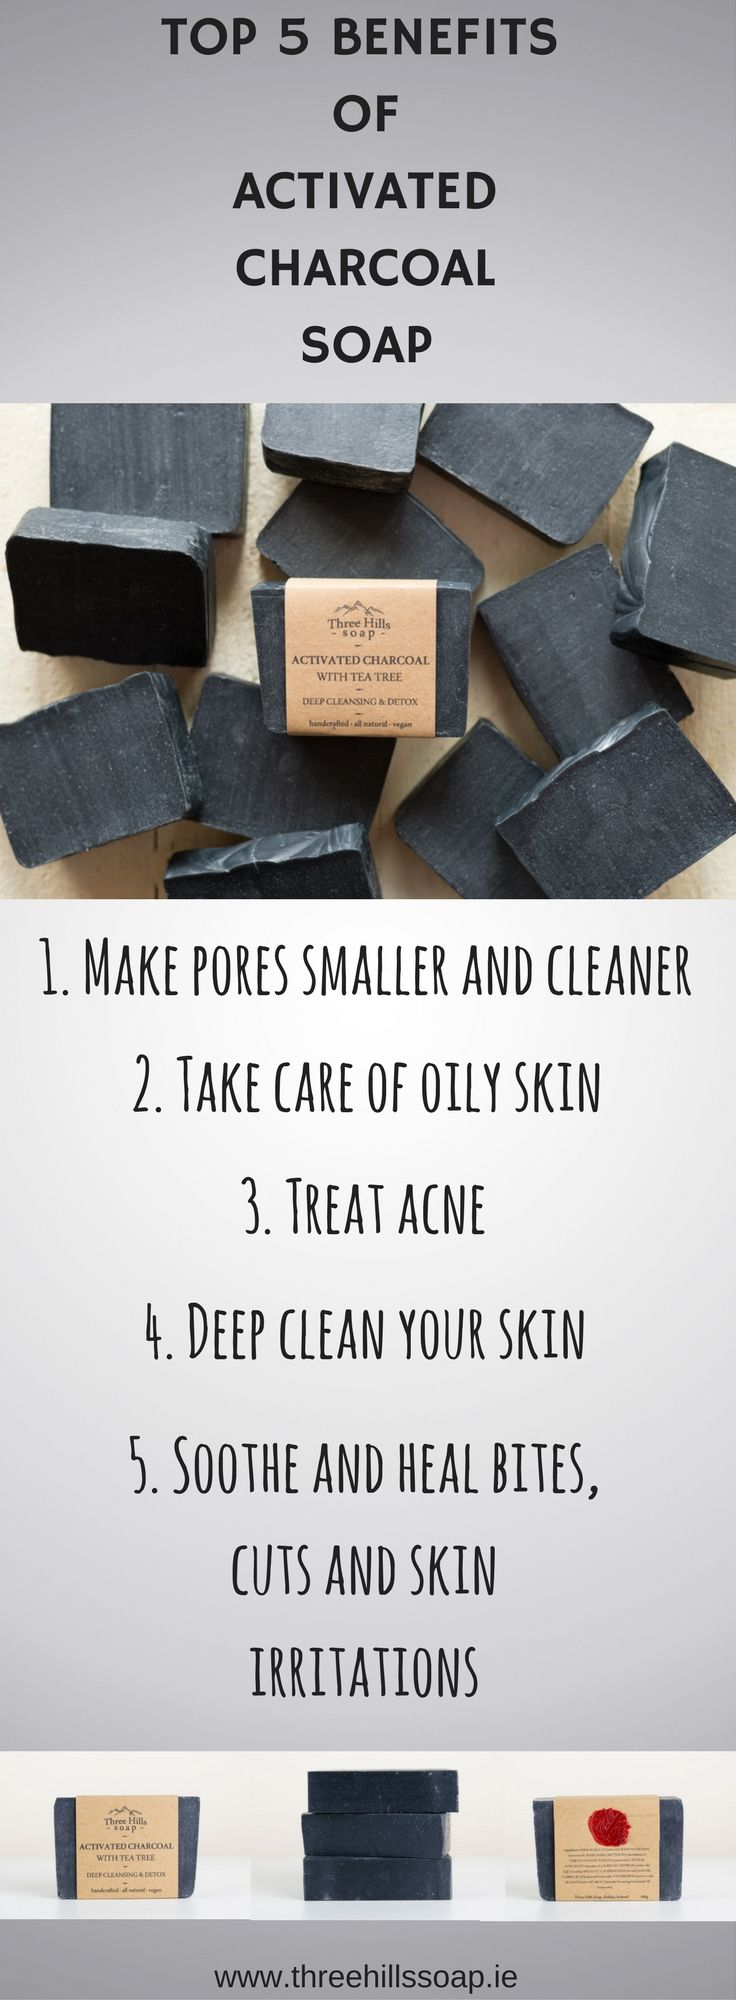 Top 5 benefits of Activated Charcoal Soap | skin problems